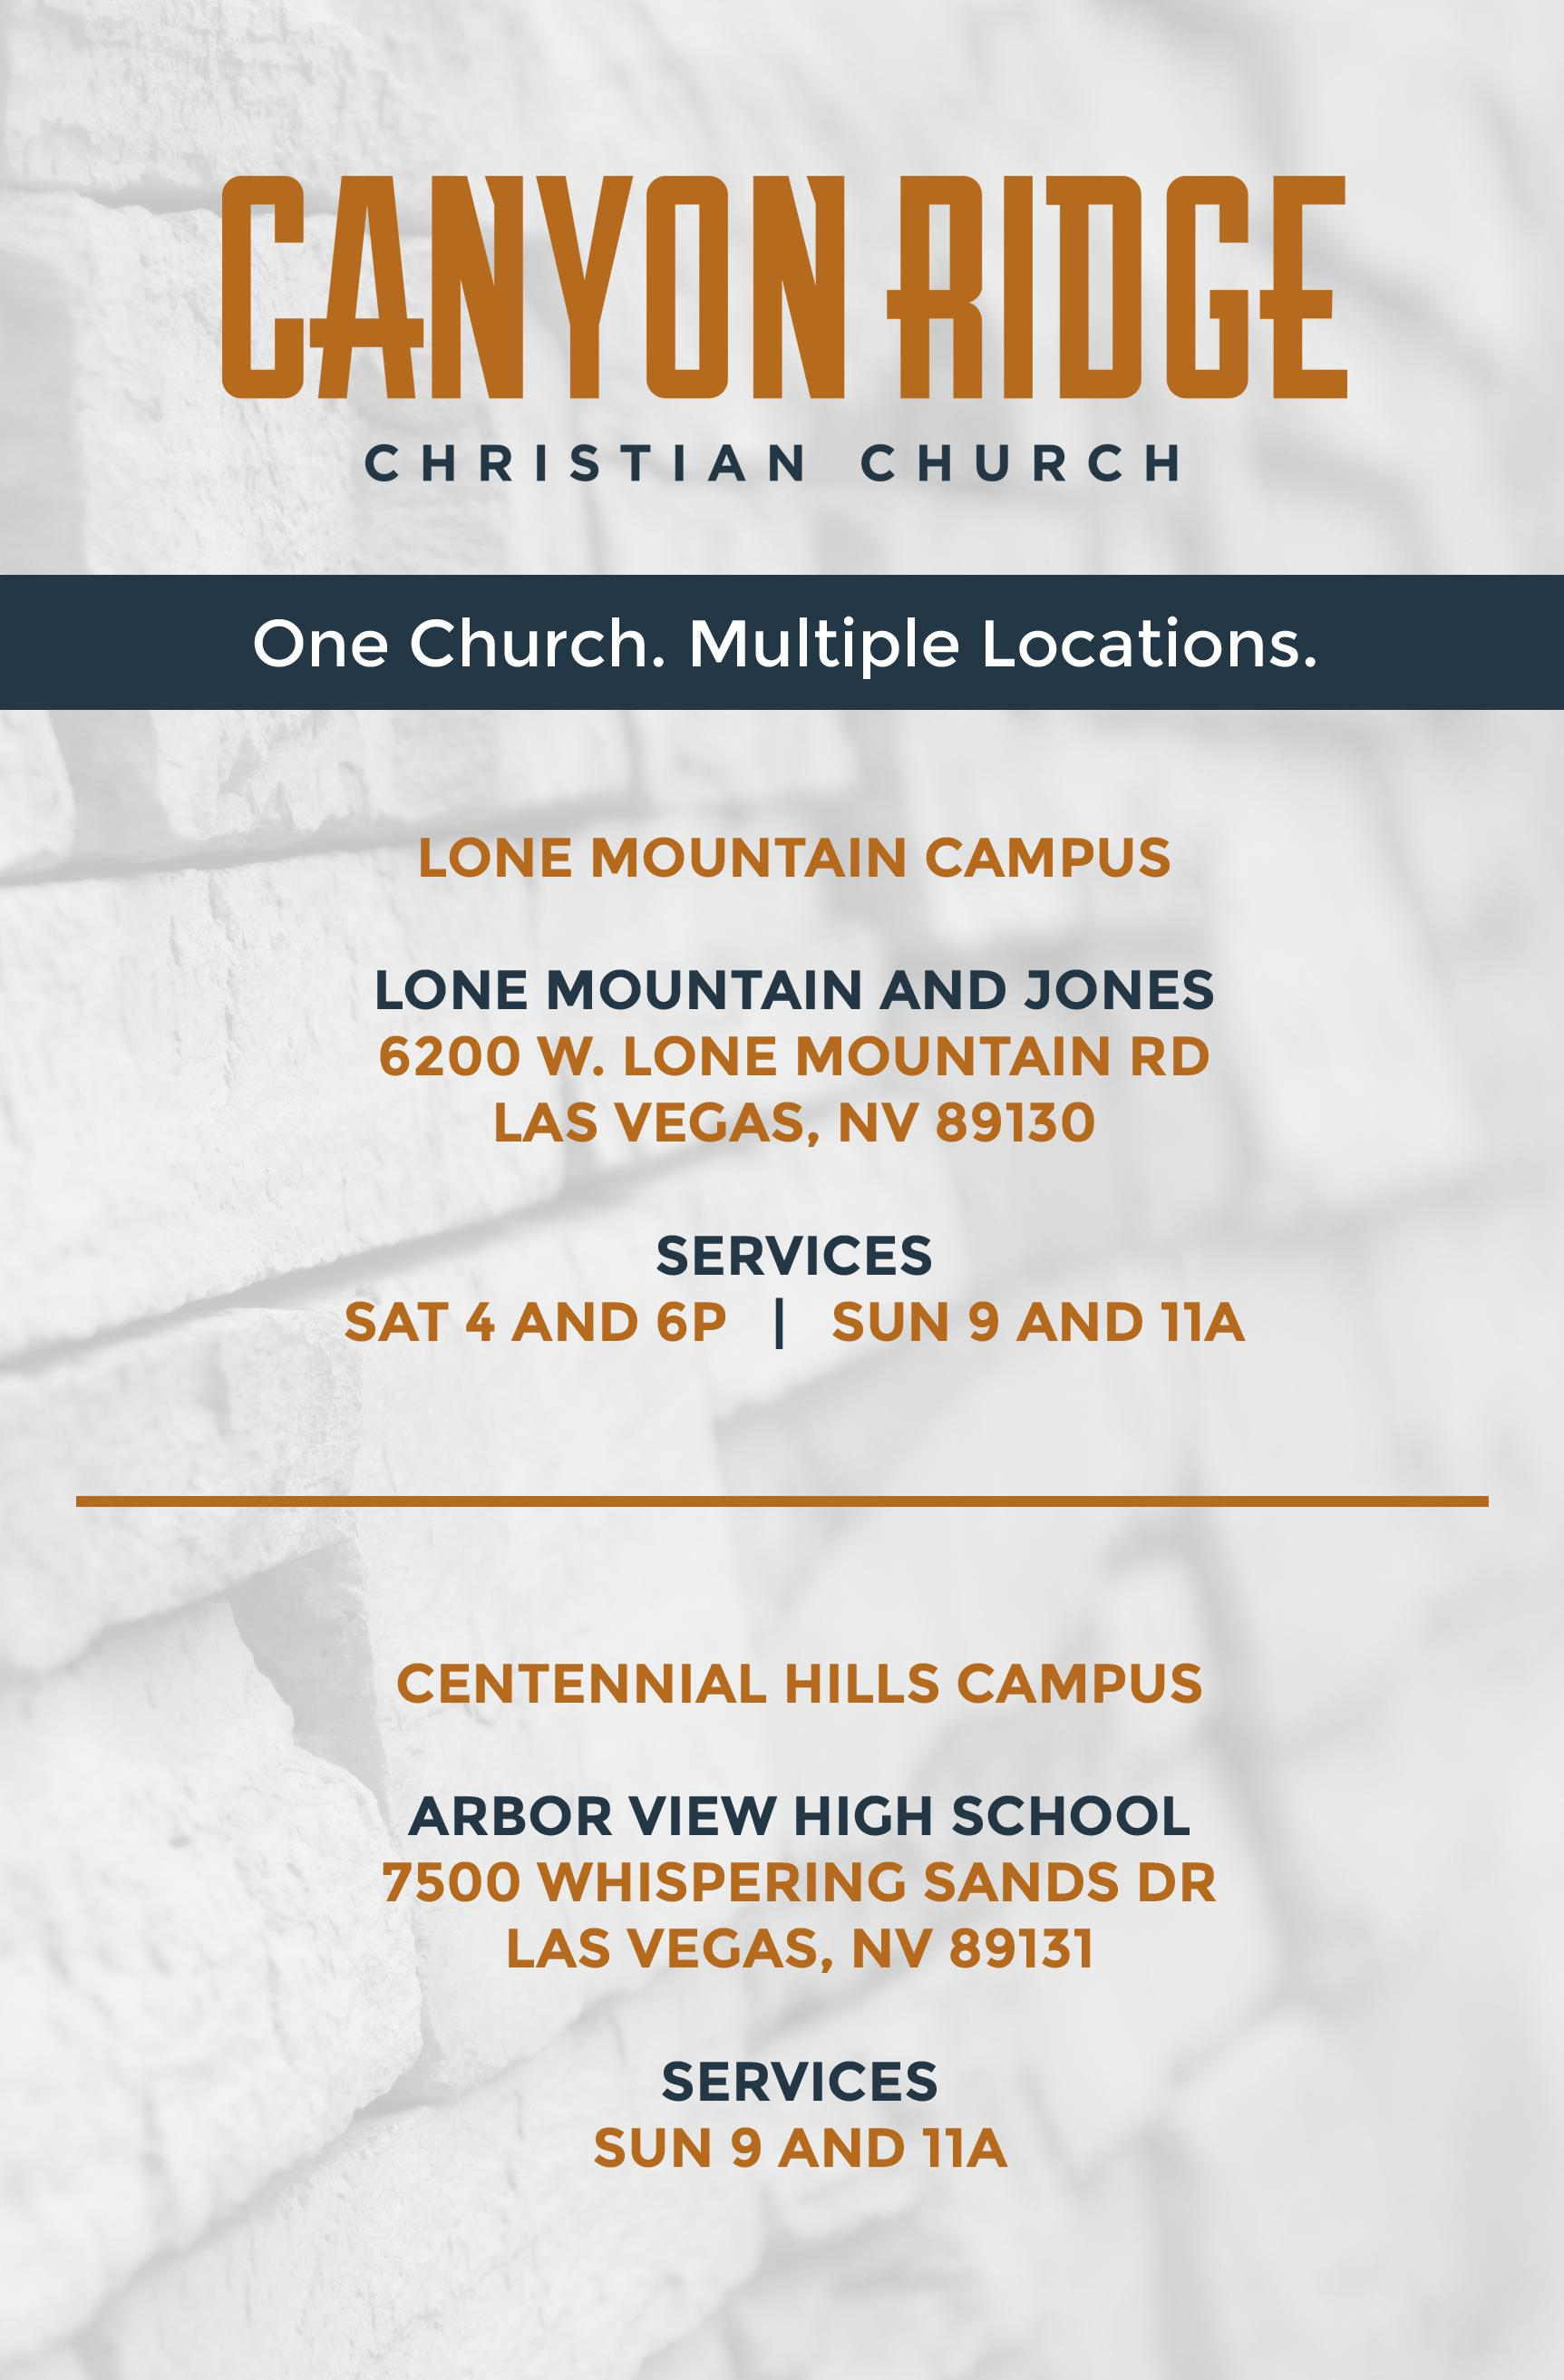 One Church - Multiple Locations